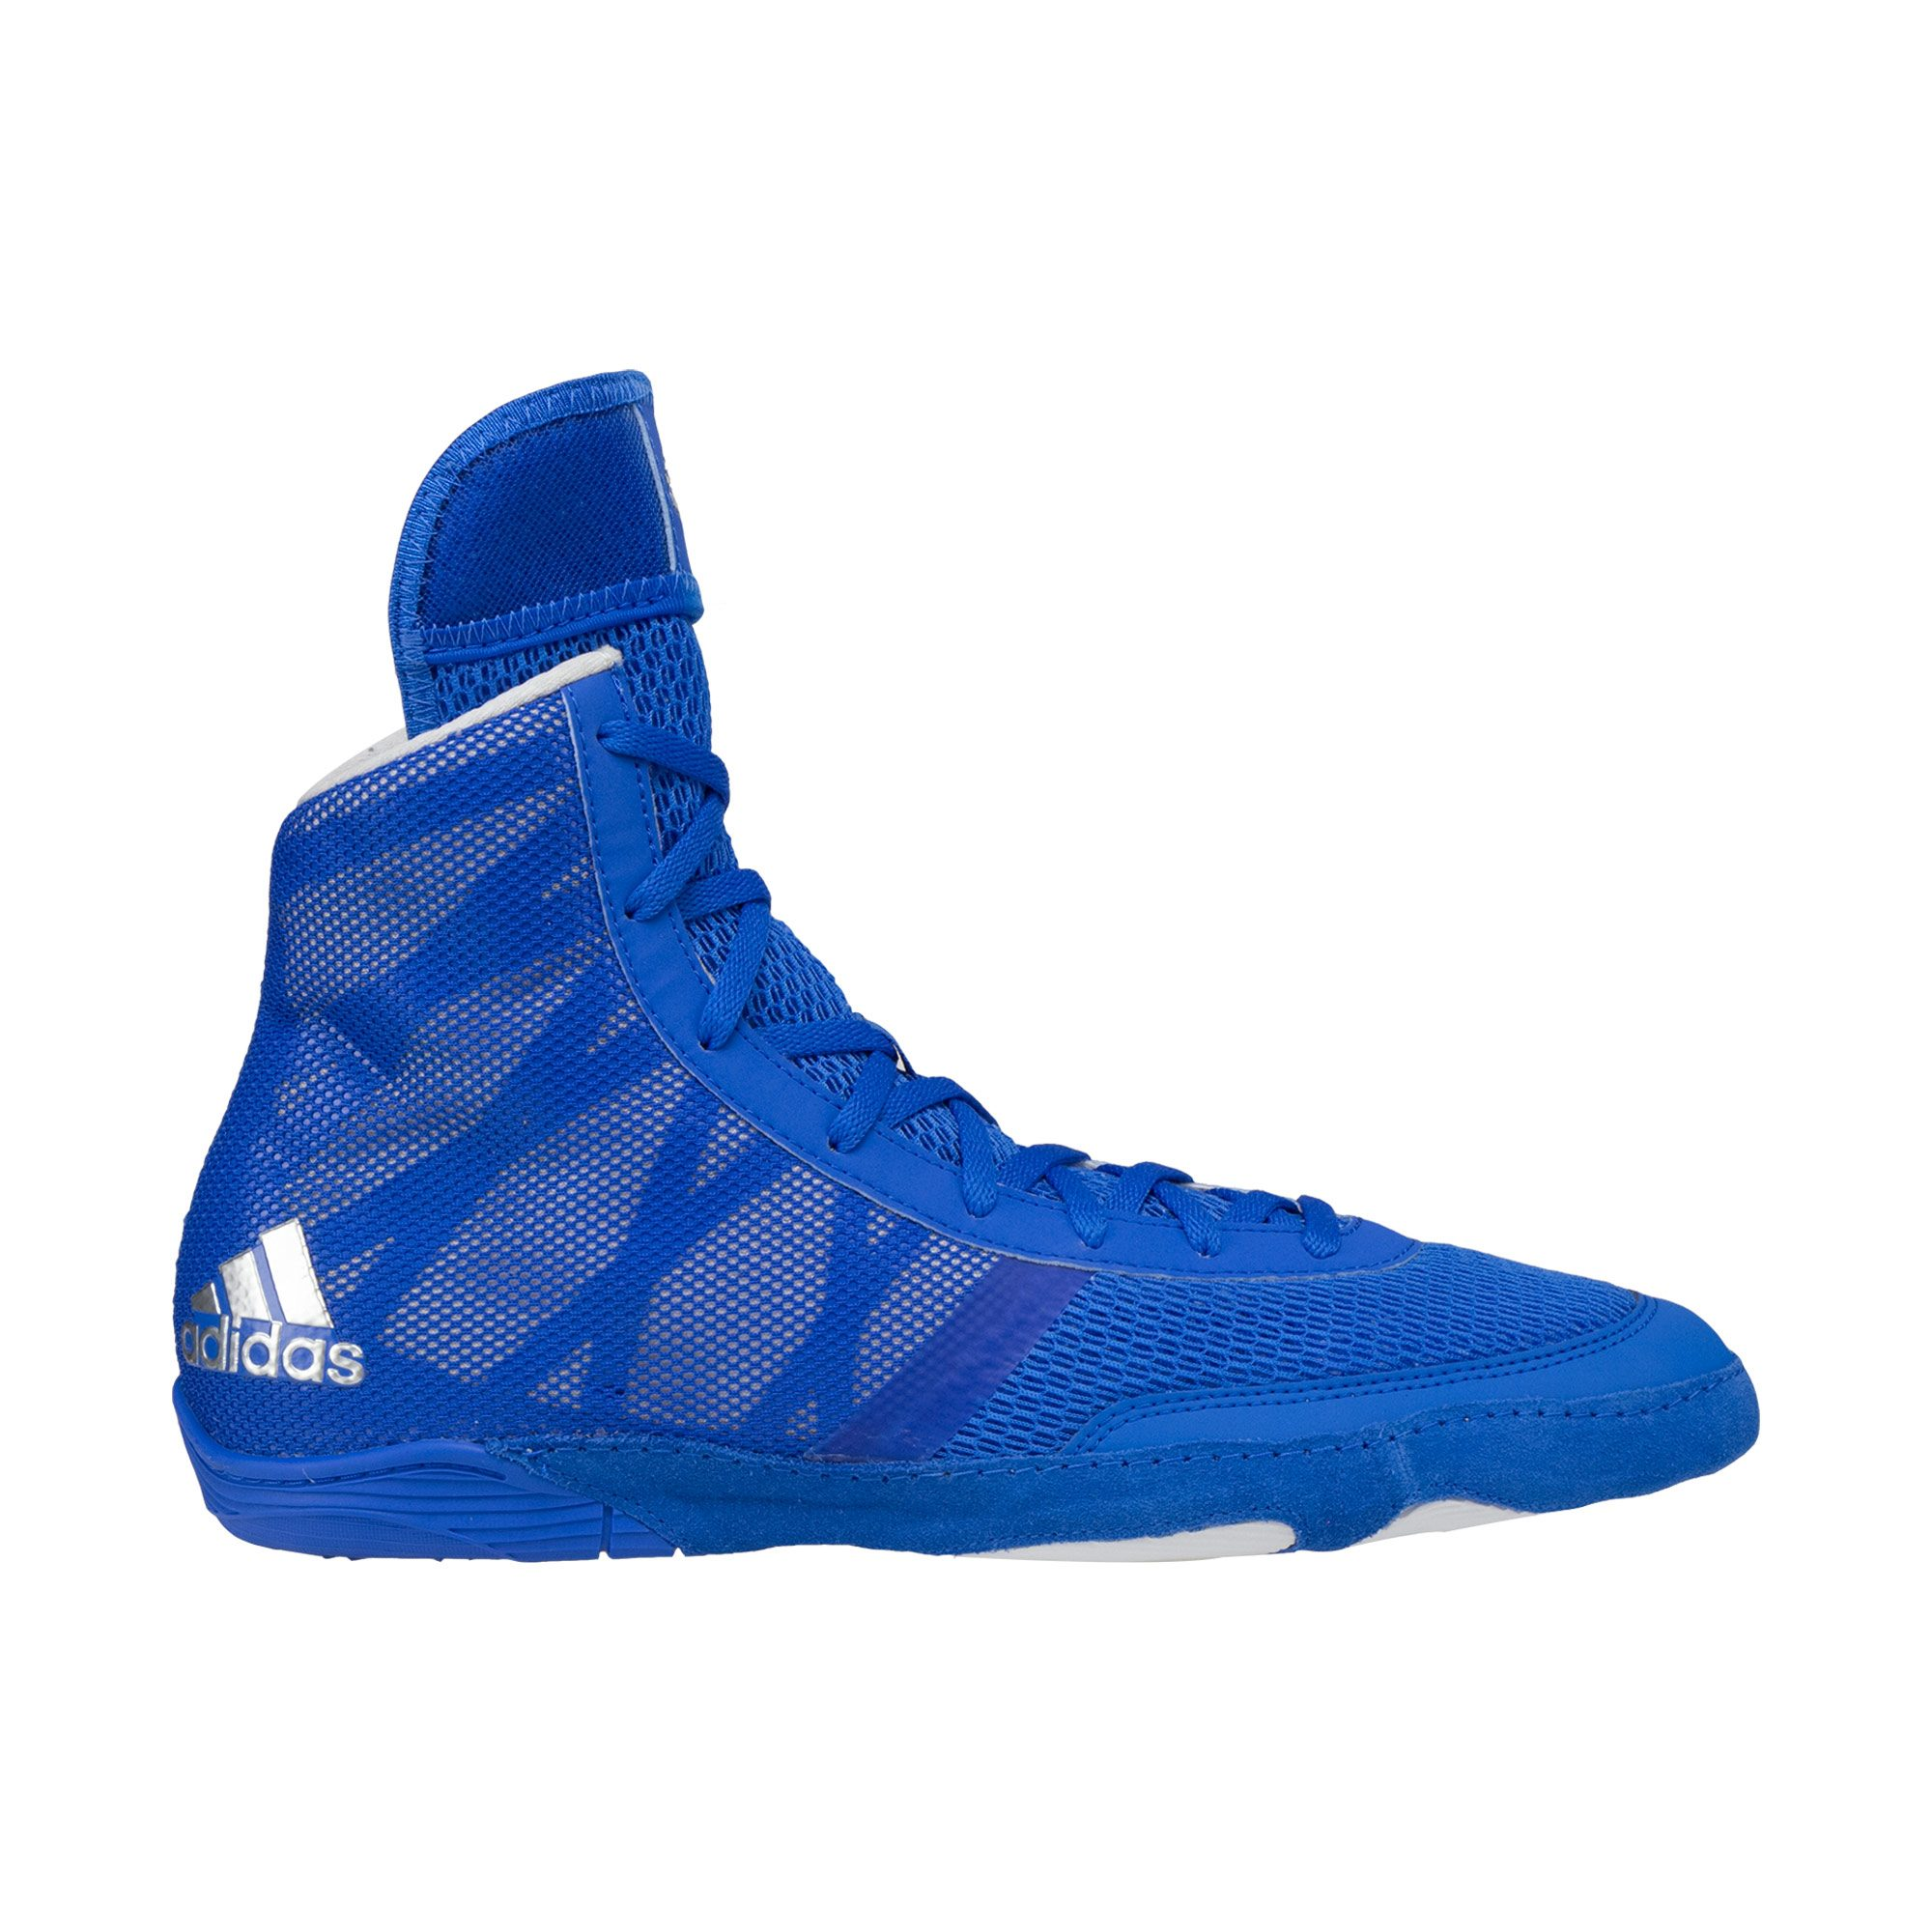 Adidas Pretereo 3 Royal Blue Silver White ... 6fdf36814